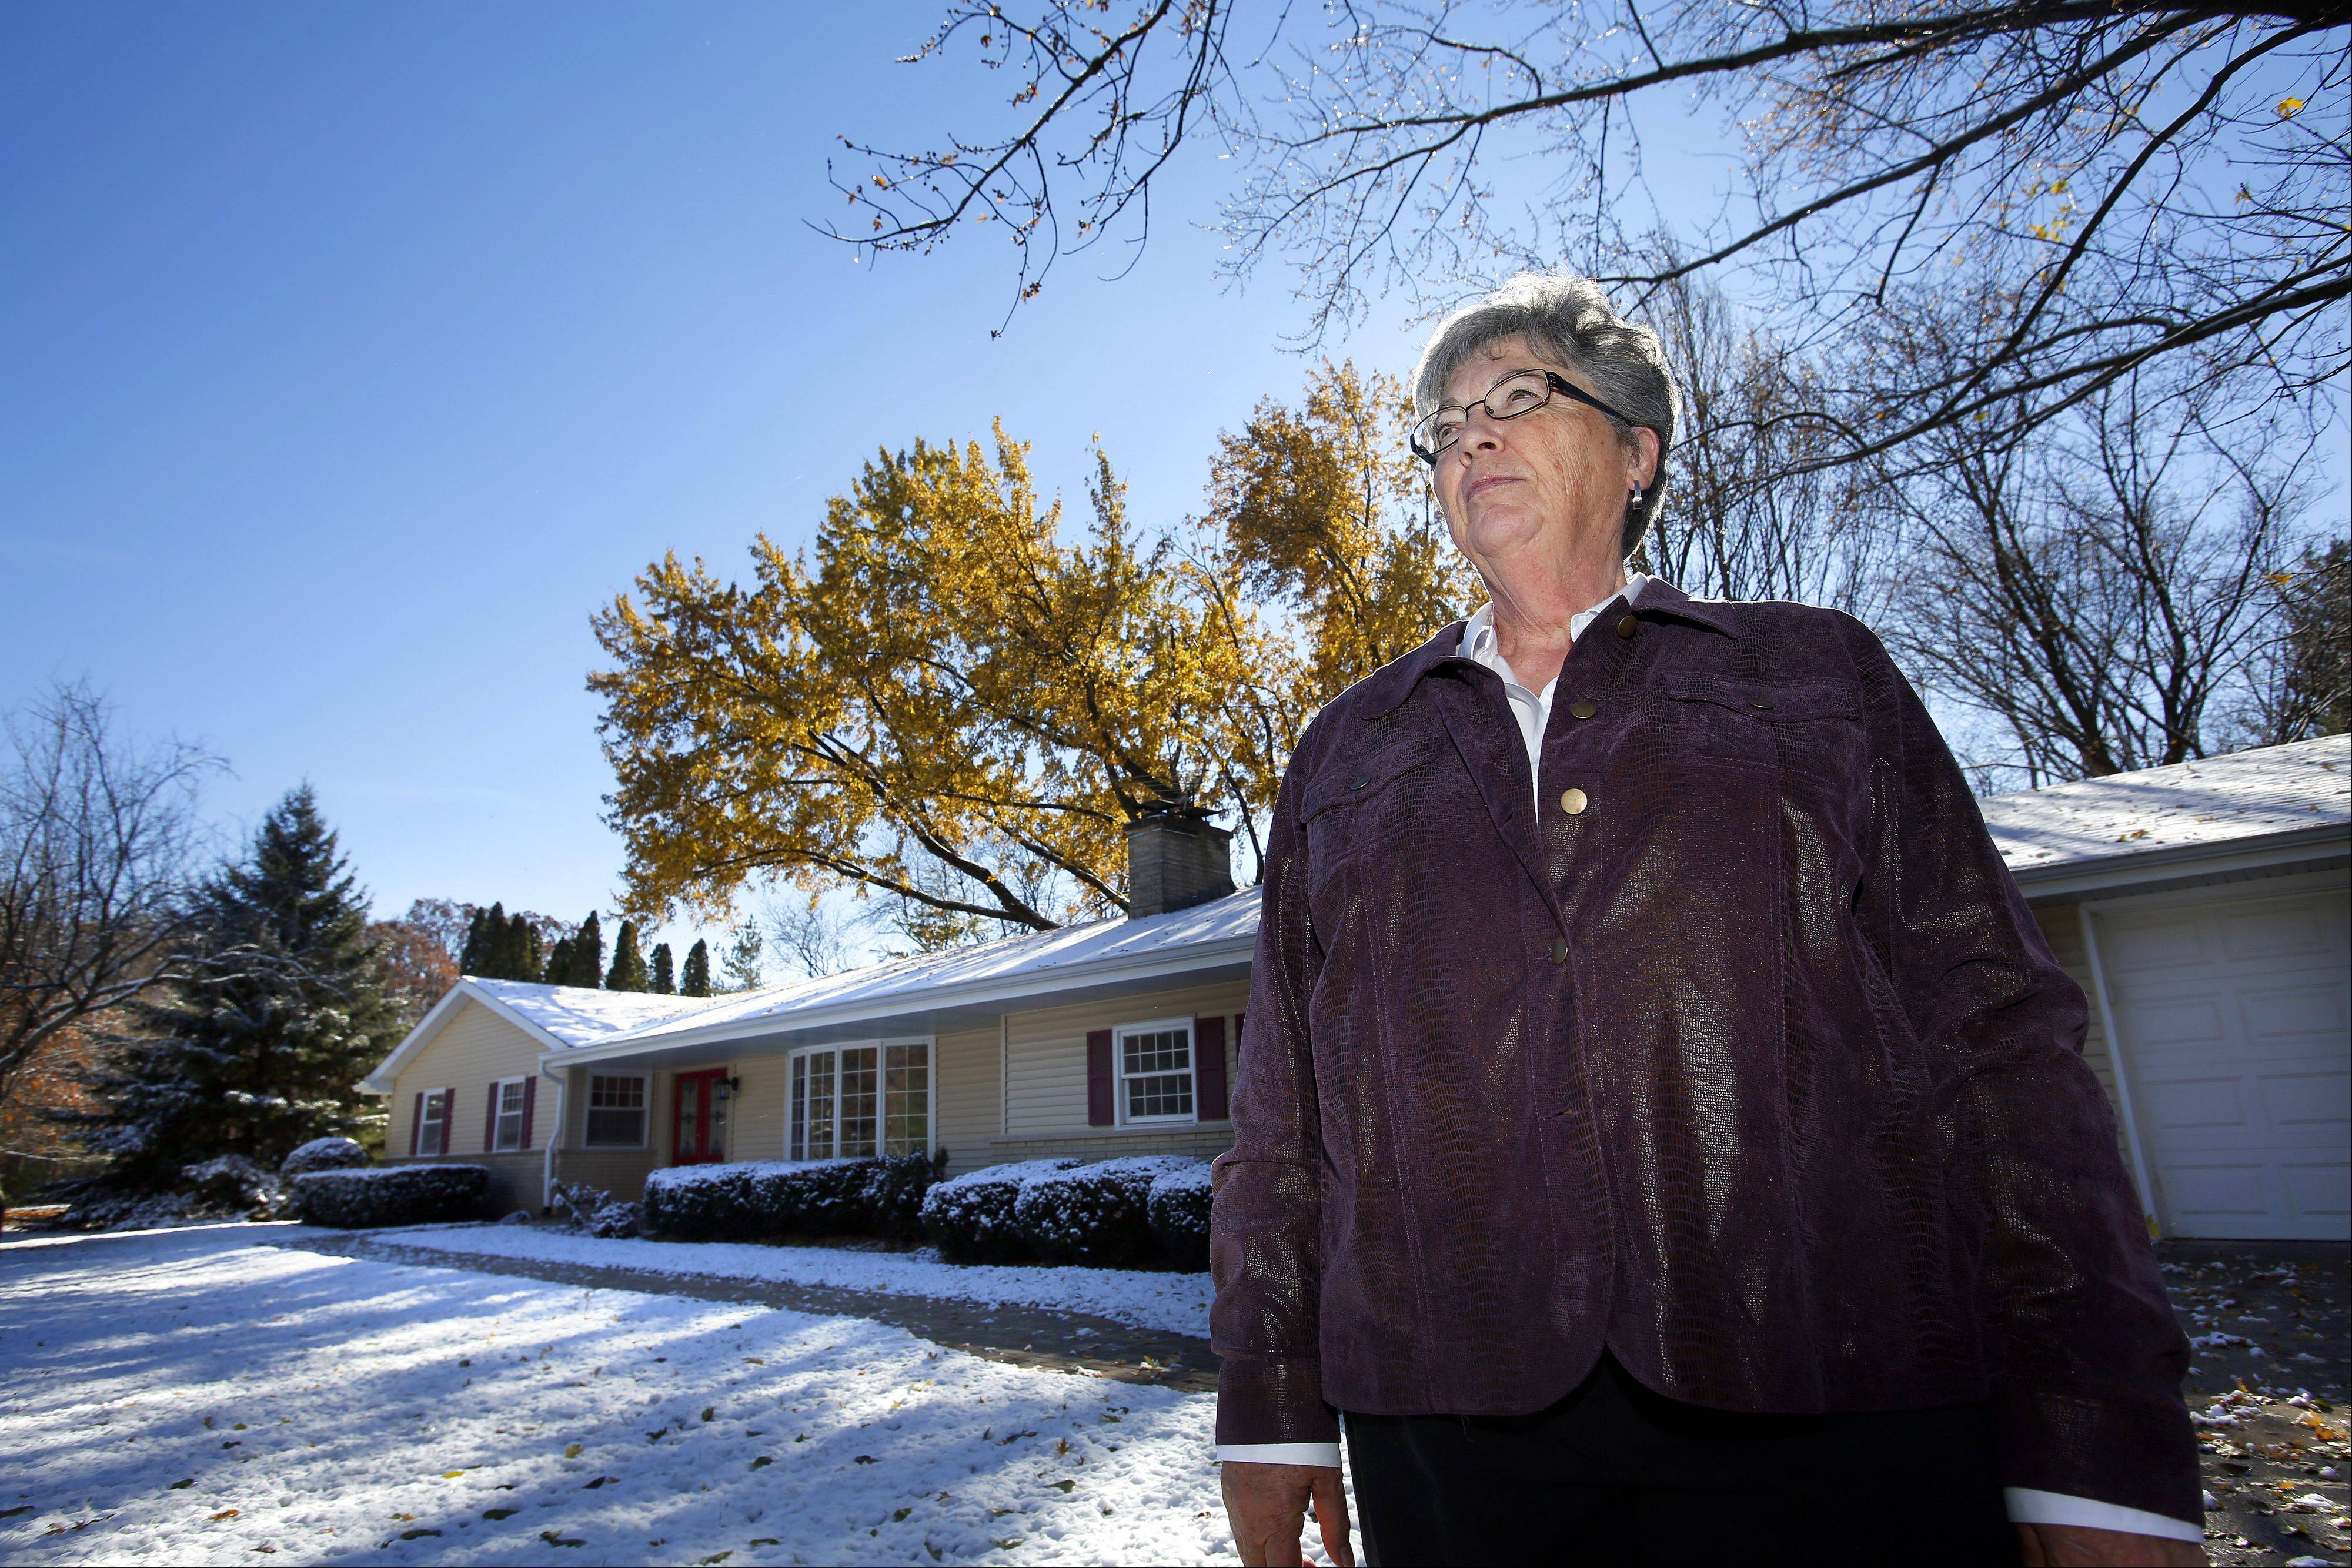 While the assessed value of her Crystal Lake house has decreased by $12,000 over the past two years, Barbara Rogers' property tax bill increased $900.